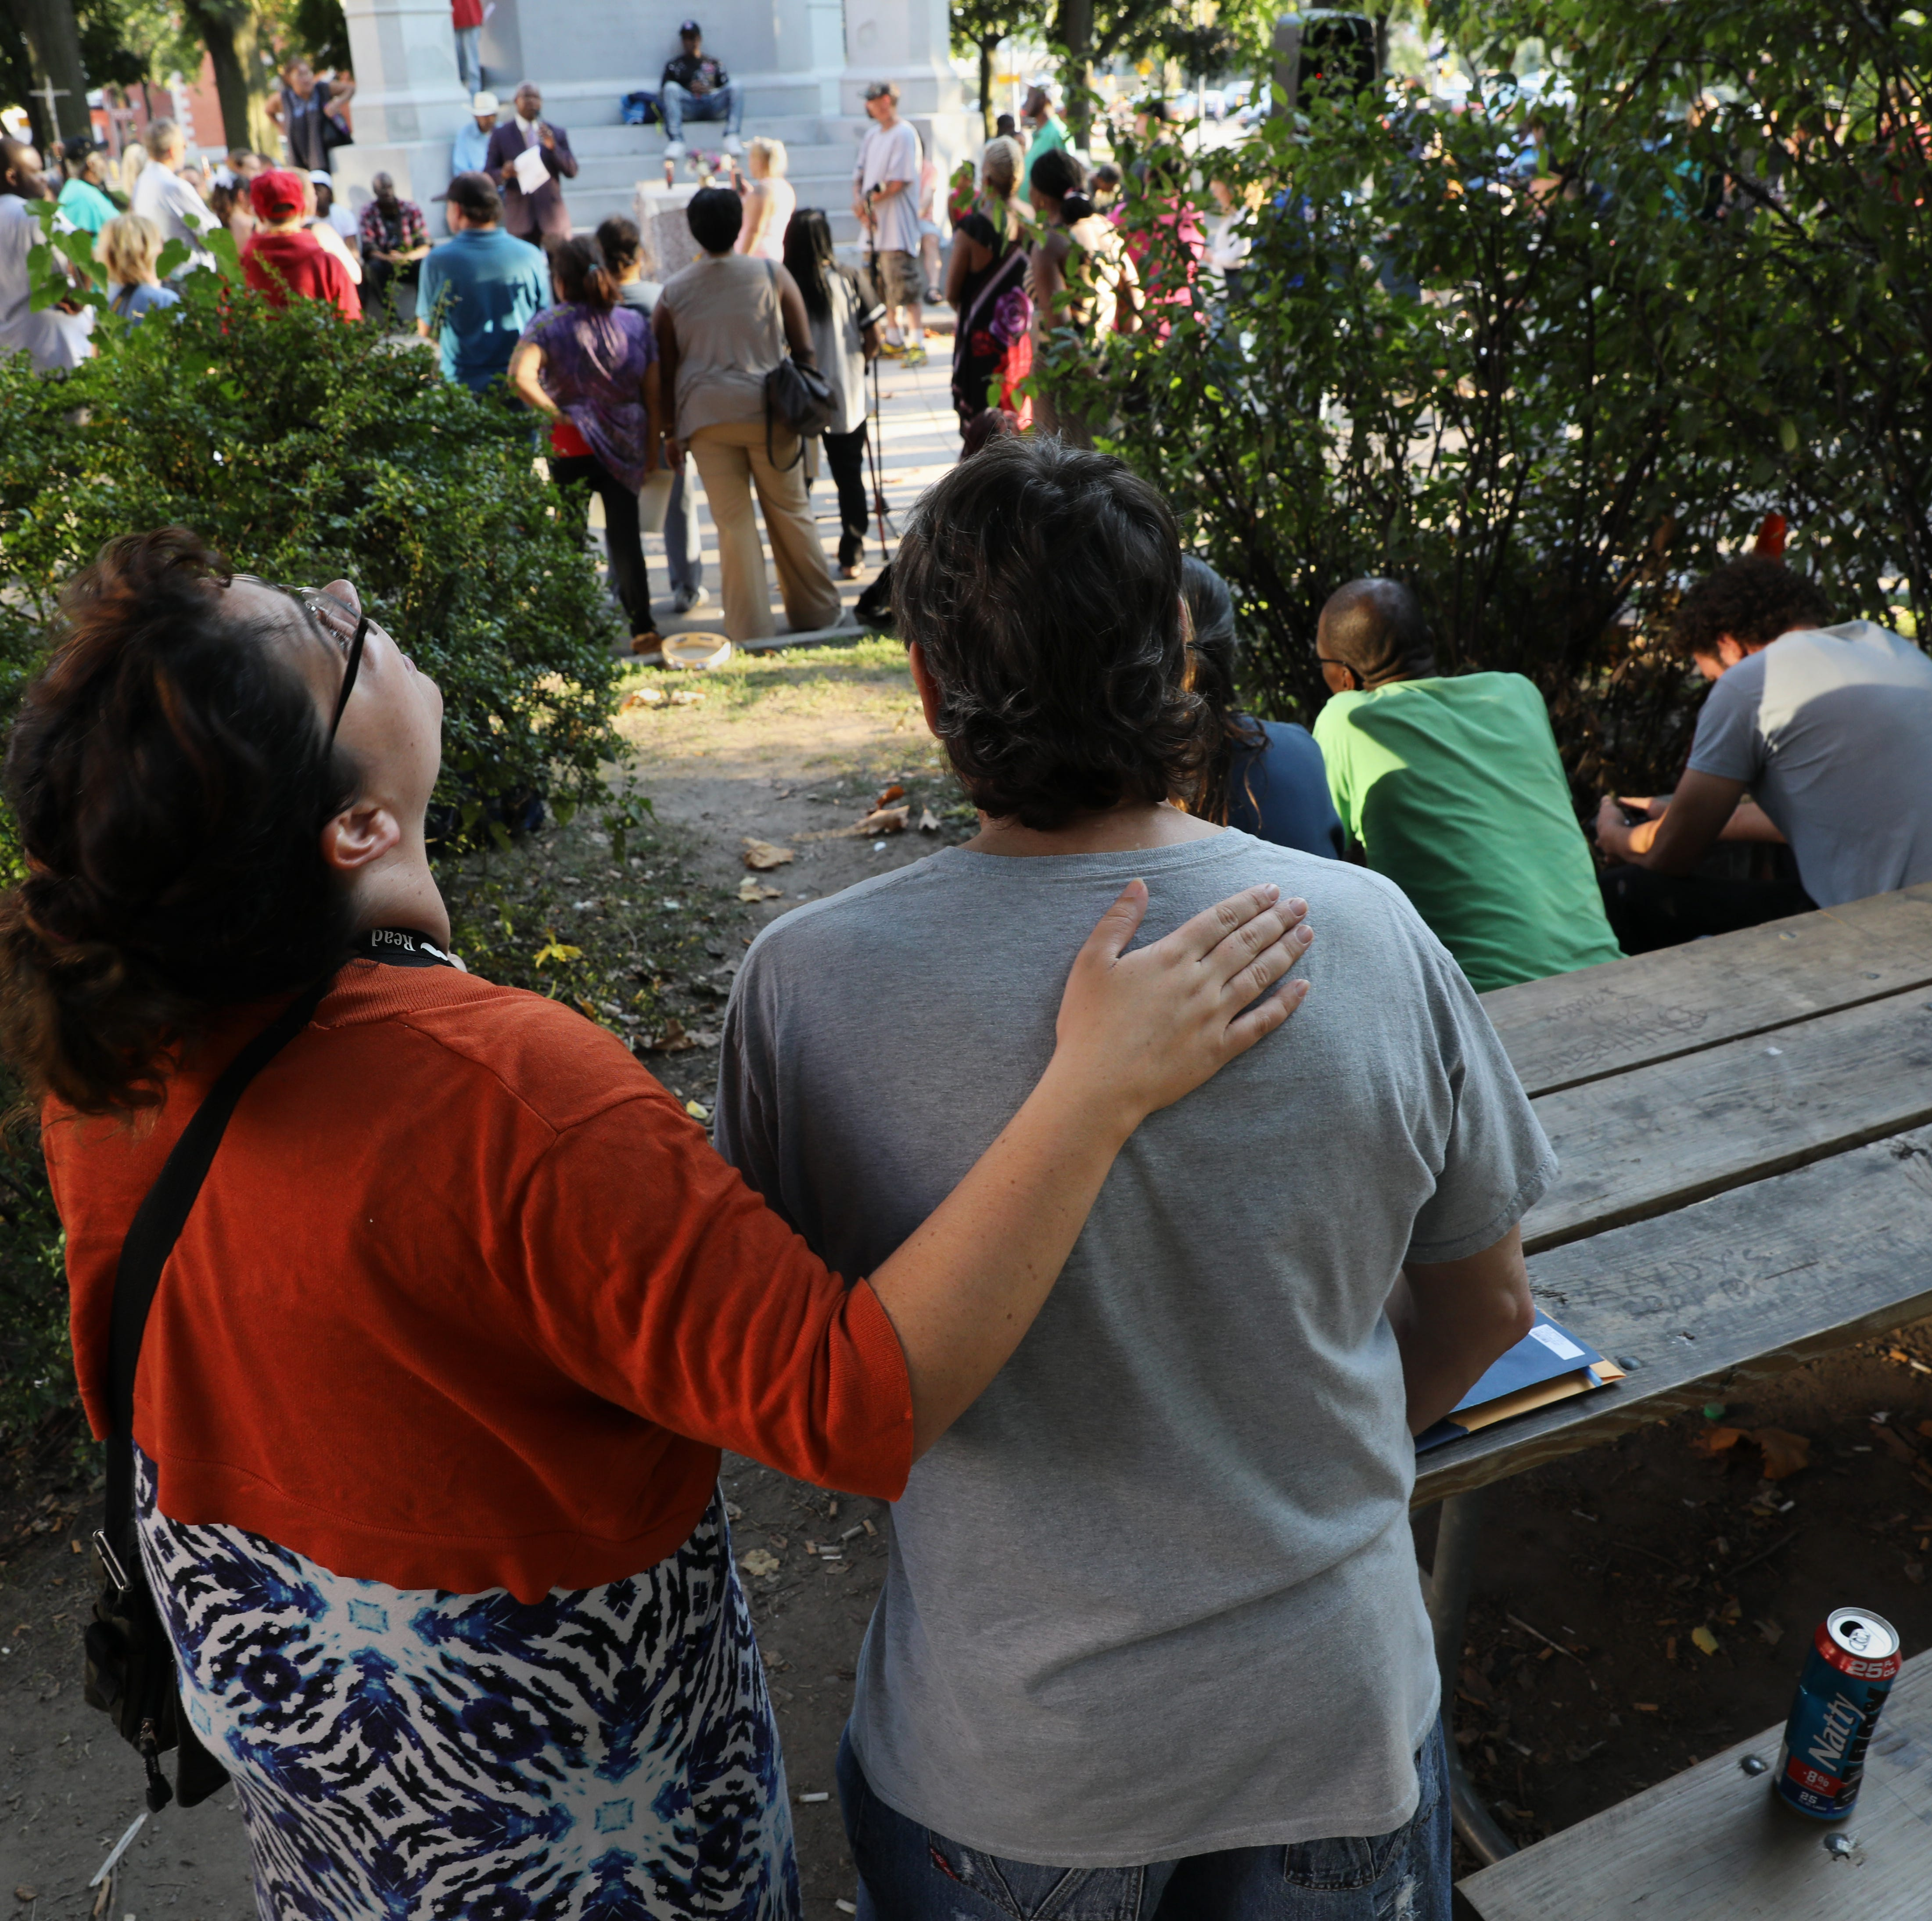 A homeless man dies in a park and more than 120 turn out to mourn him